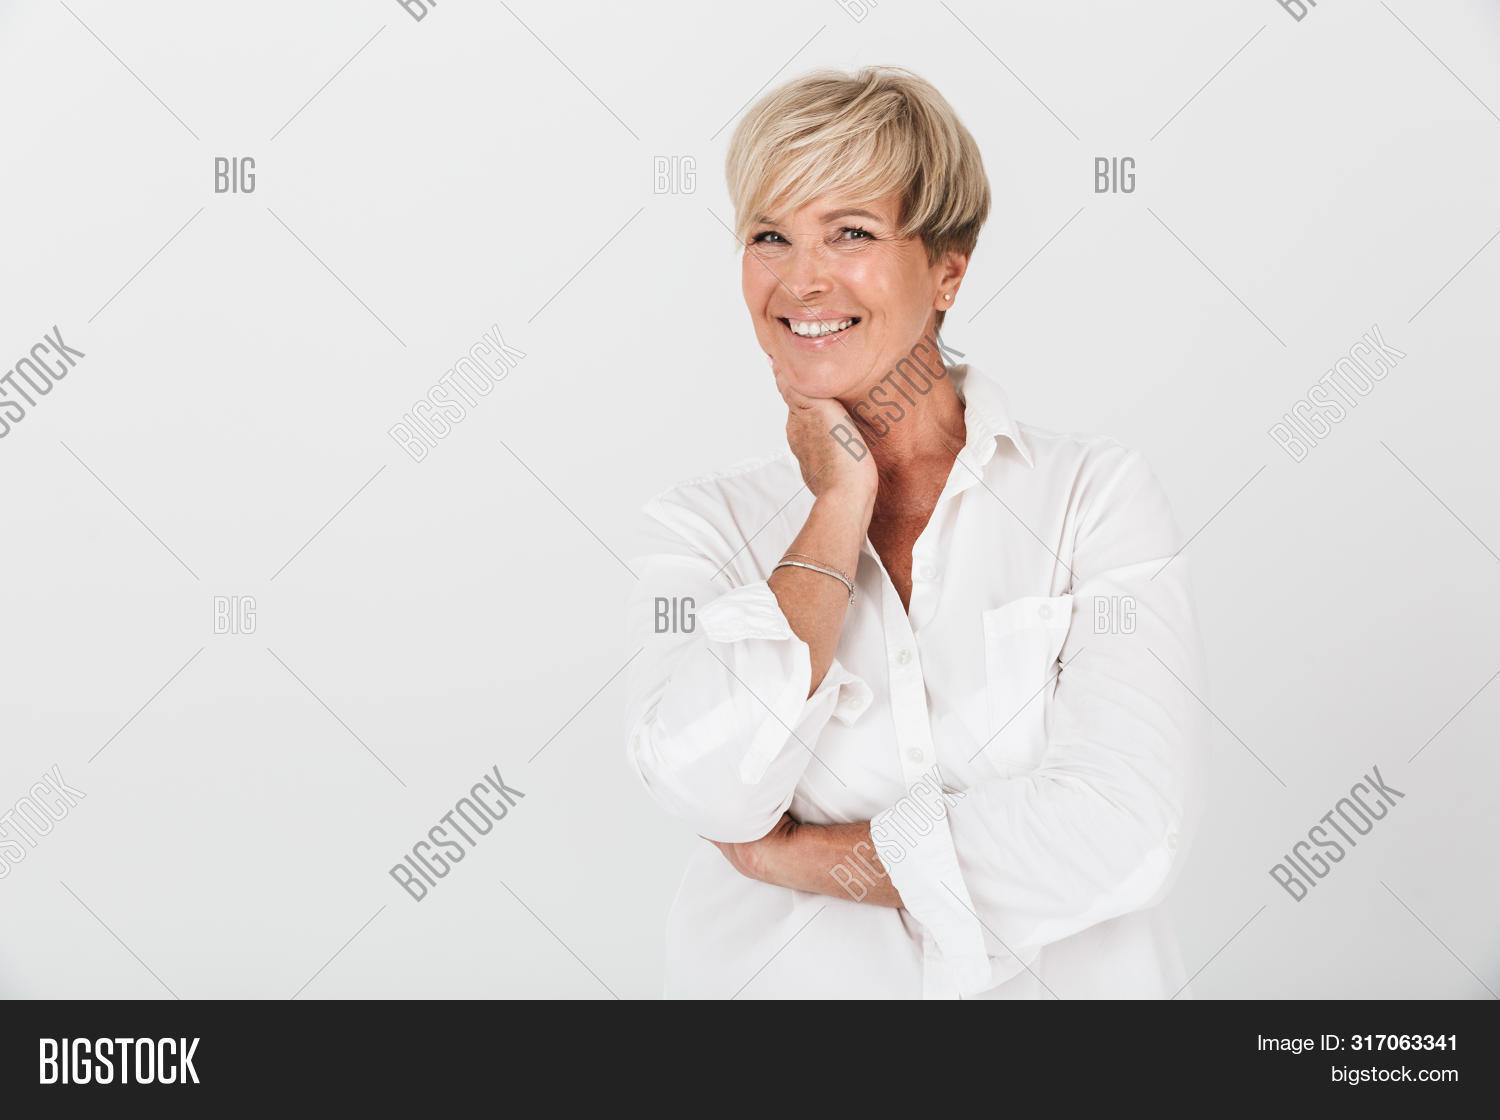 aged,amazed,appearance,attractive,background,beautiful,blond,caucasian,charming,closeup,confident,copyspace,elegant,emotions,expressions,facial,female,gorgeous,grandmother,gray,grown,hair,happy,indoors,isolated,joyous,laughing,looking,mature,middle,model,mother,nice,older,one,optimistic,person,portrait,posing,positive,short,smiling,standing,studio,white,woman